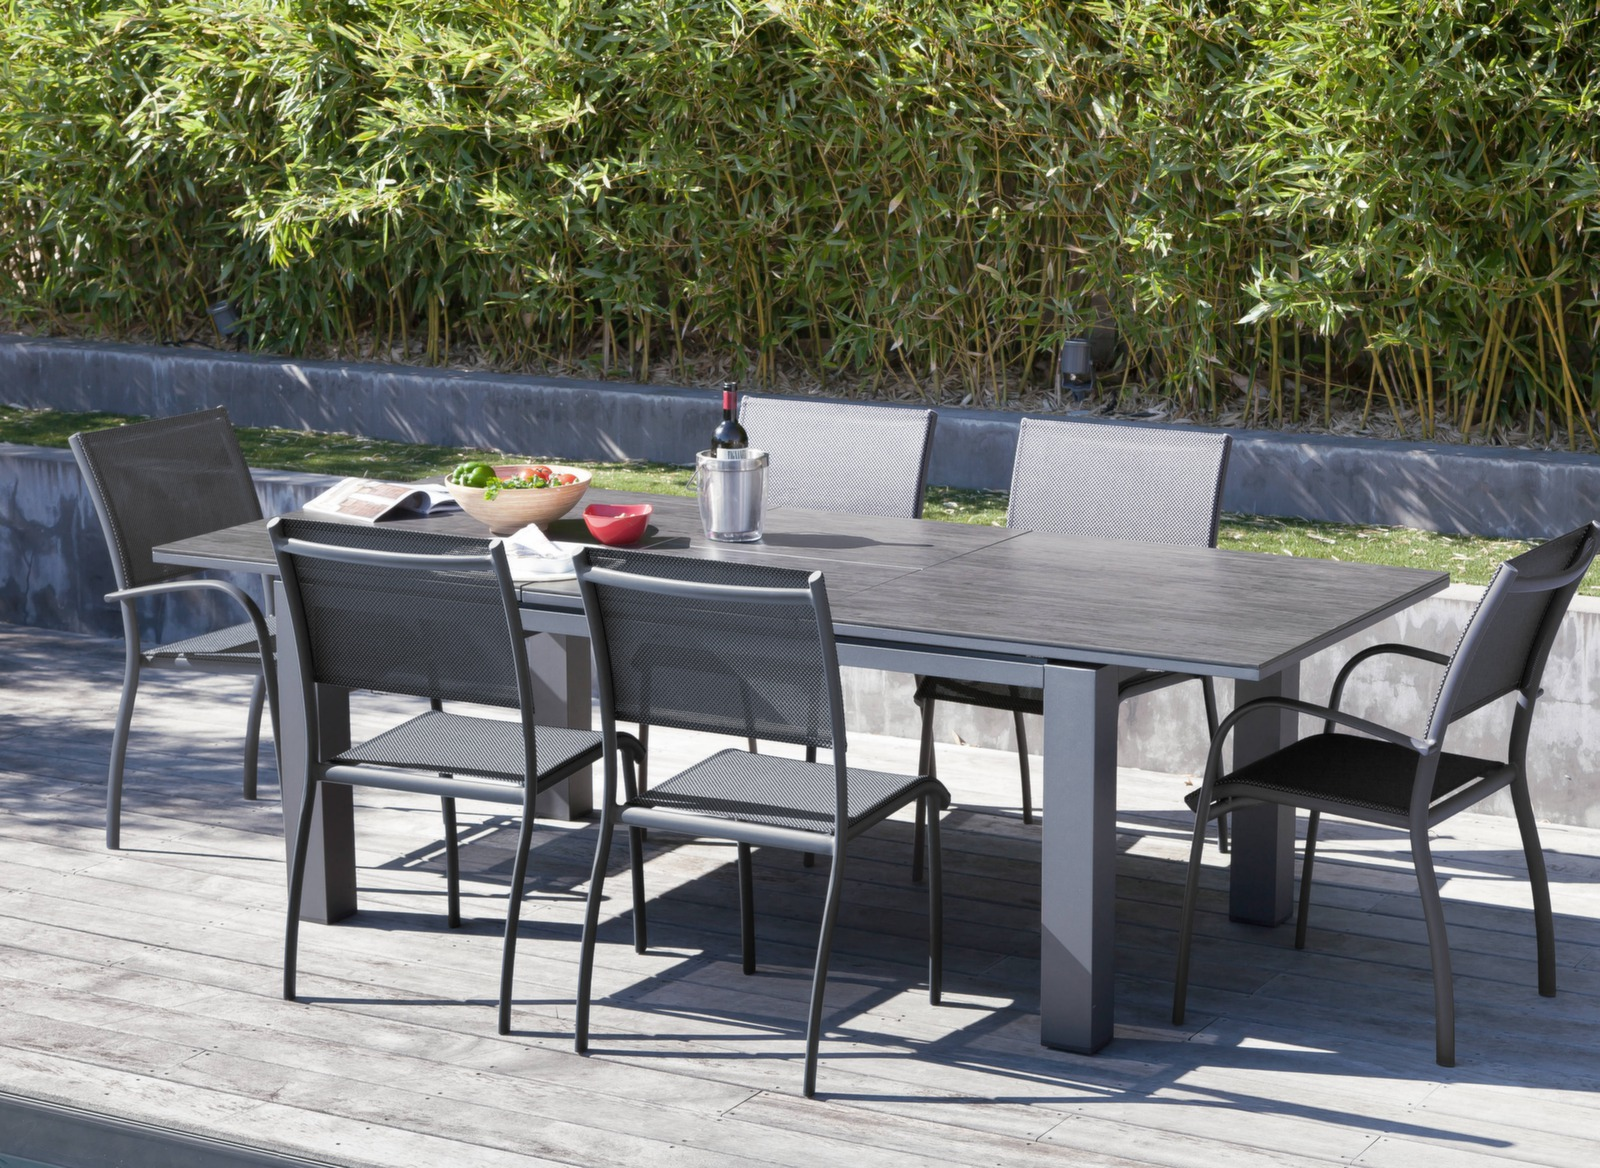 Stunning Table Jardin Alu Oceo Images - House Design - marcomilone.com